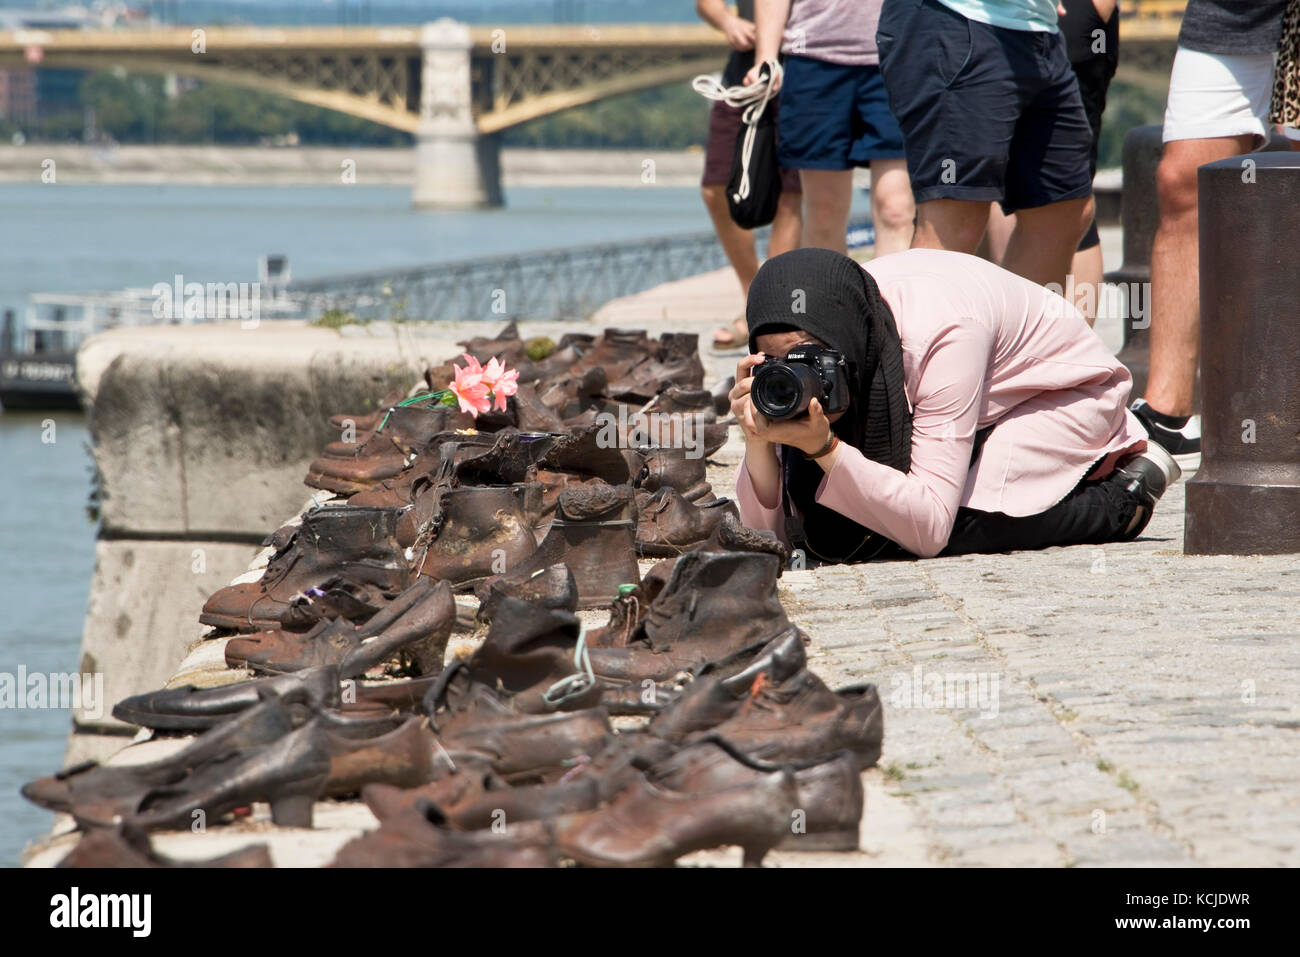 The Shoes on the Danube Bank memorial in Budapest on a sunny day with a tourist taking pictures. - Stock Image